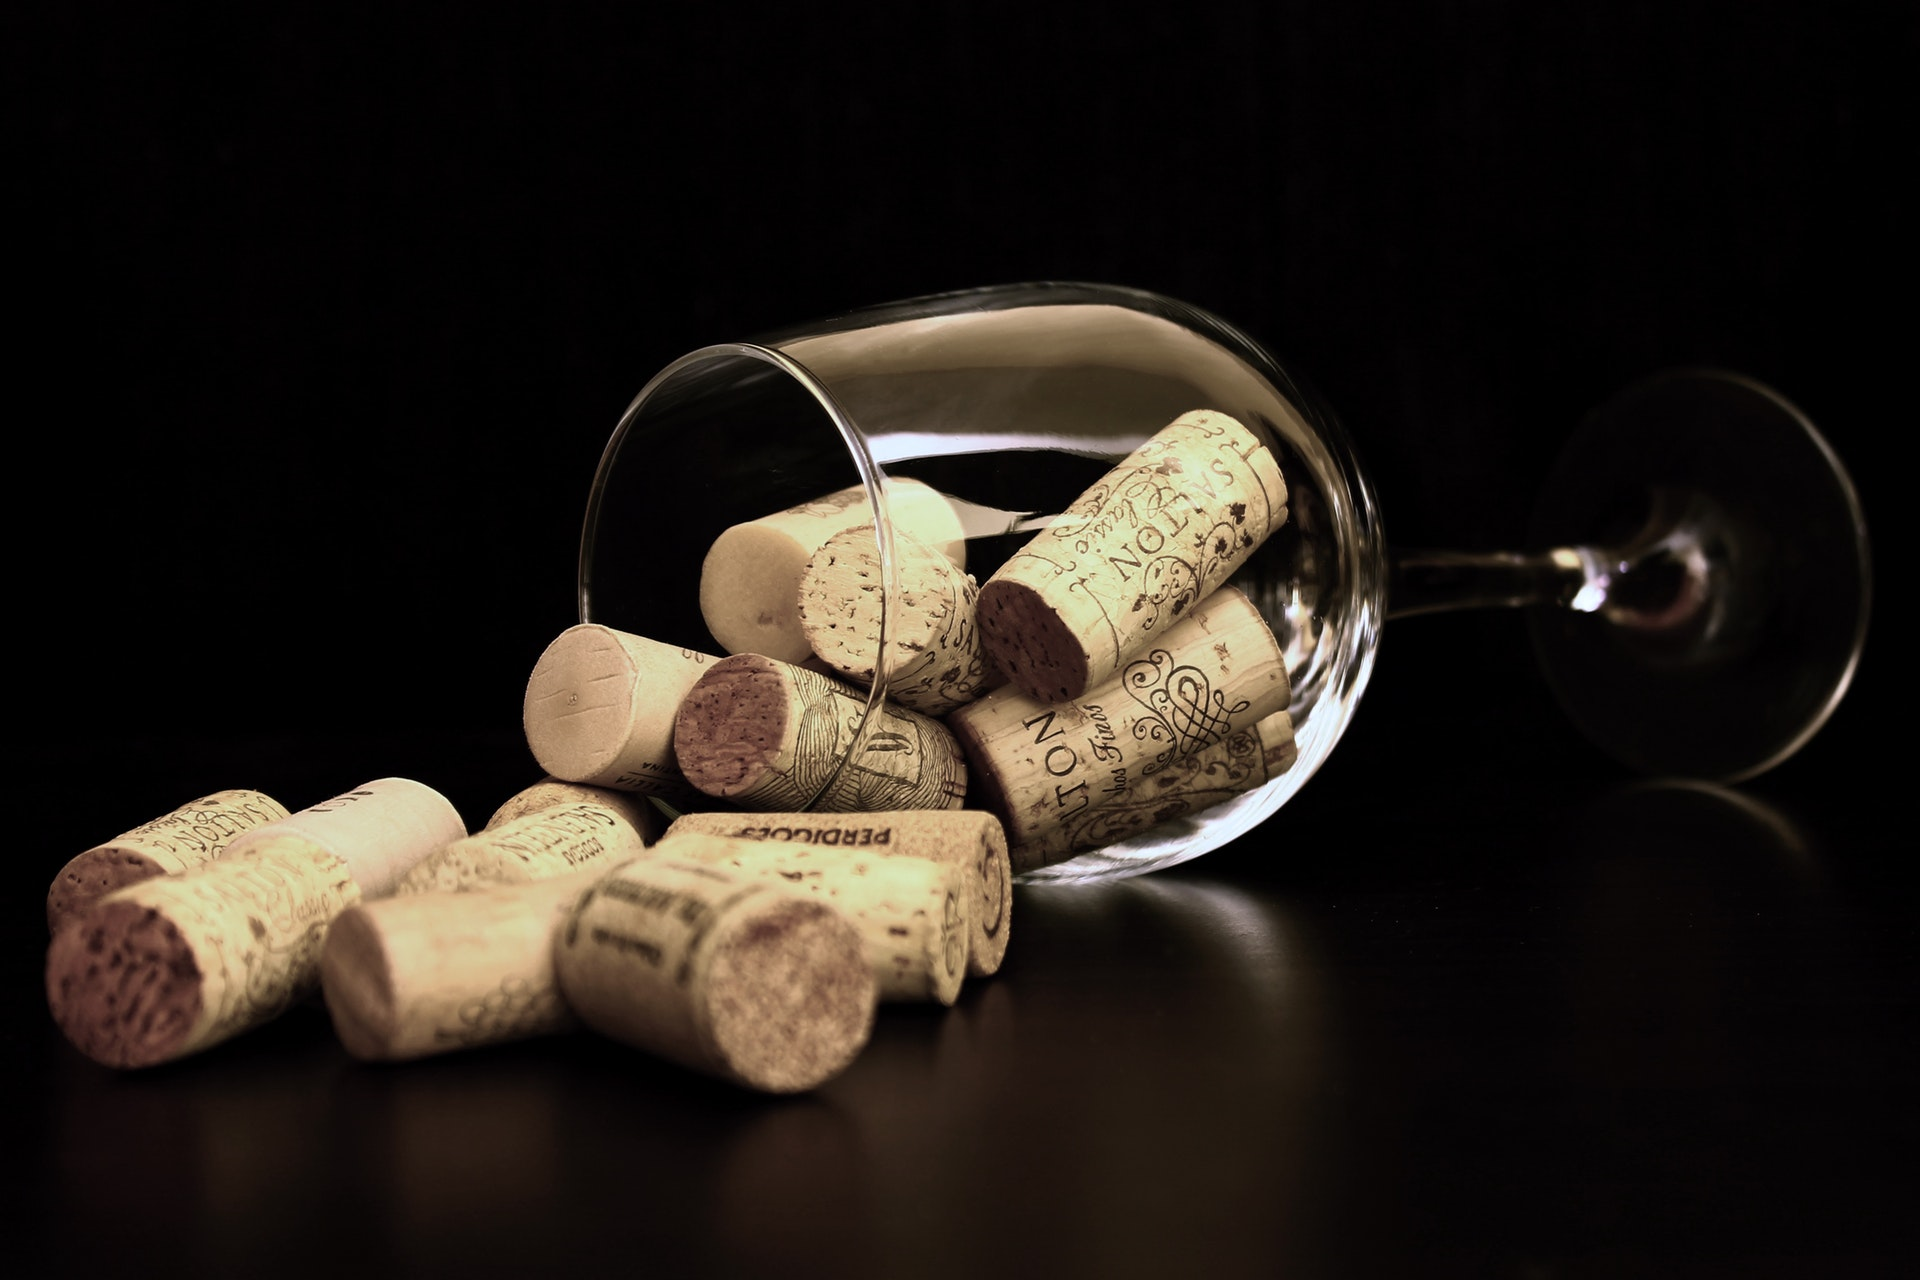 brown-corks-on-clear-wine-glass-36741